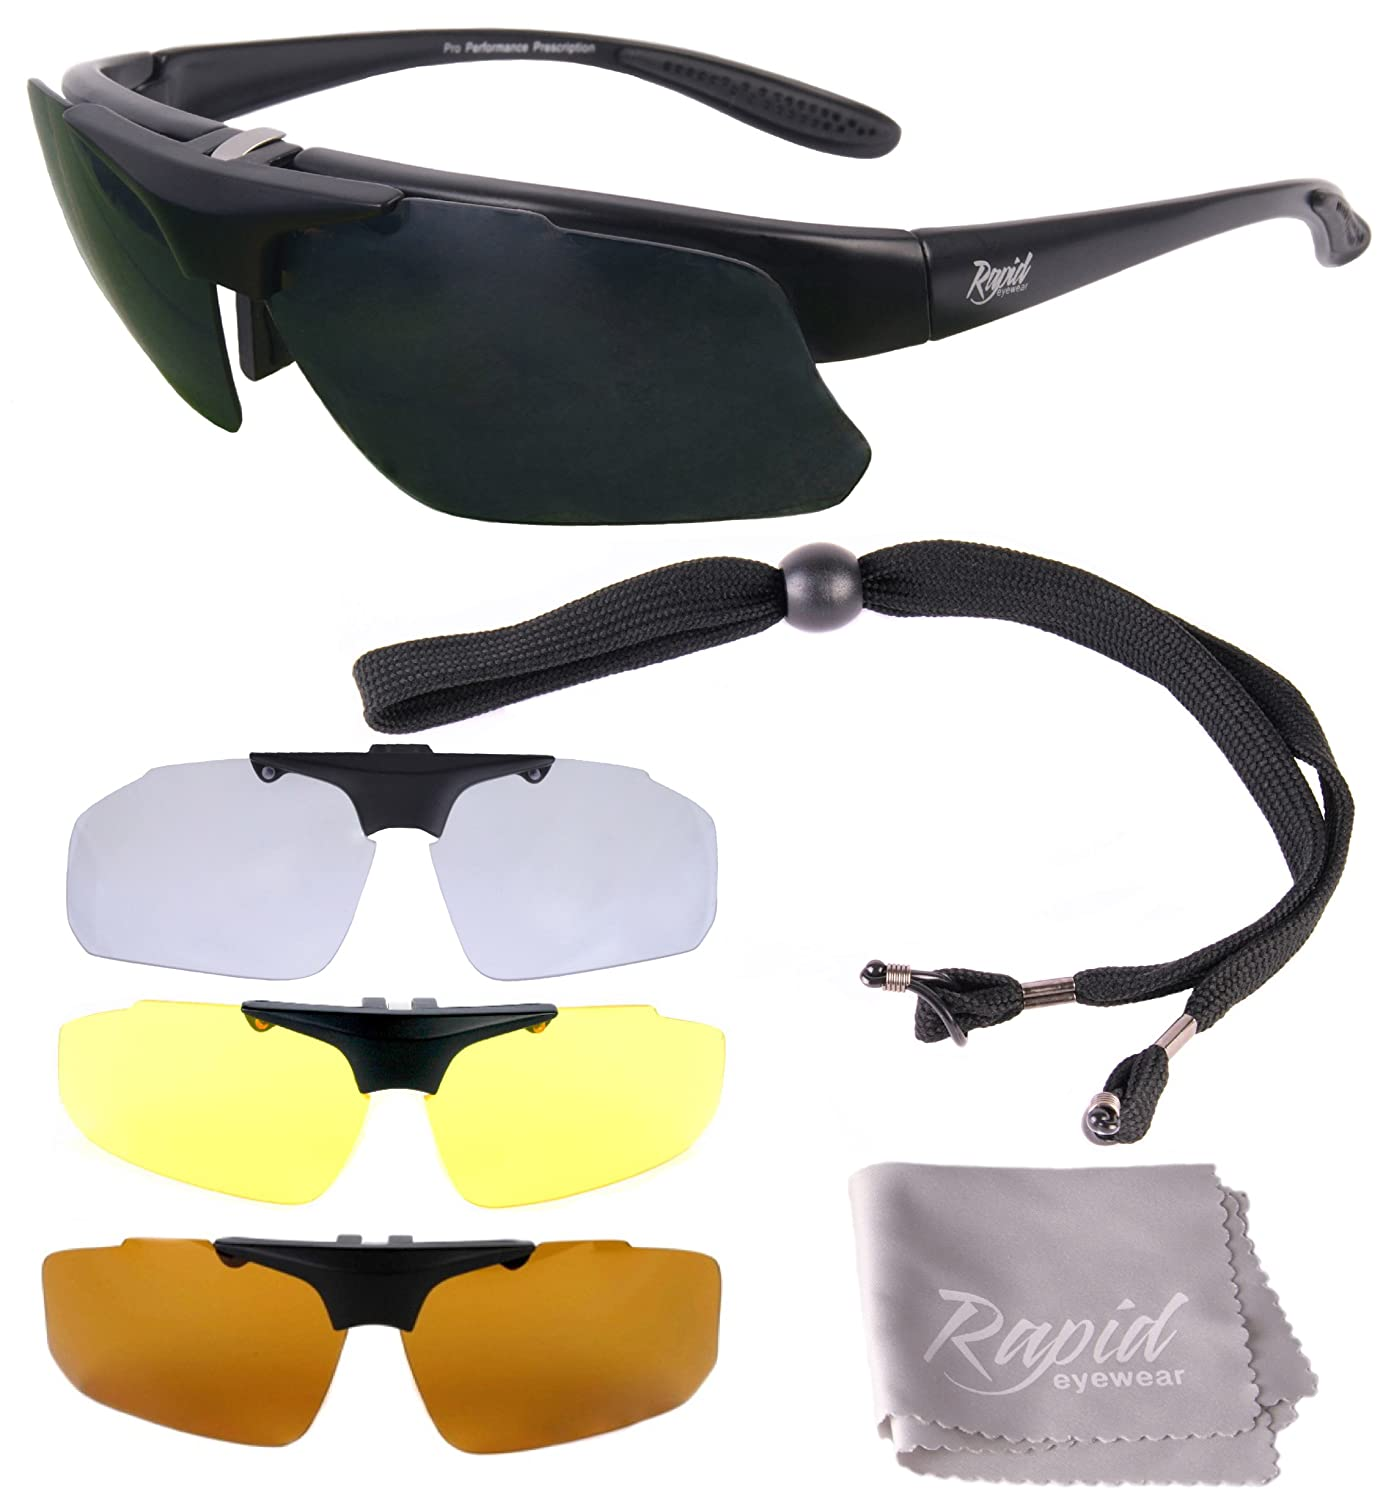 f80f872ba3 Rapid Eyewear Pro Performance Plus Rx Sports Sunglasses Frame with  Interchangeable UV Polarised Lenses. For Men and Women. For Cycling